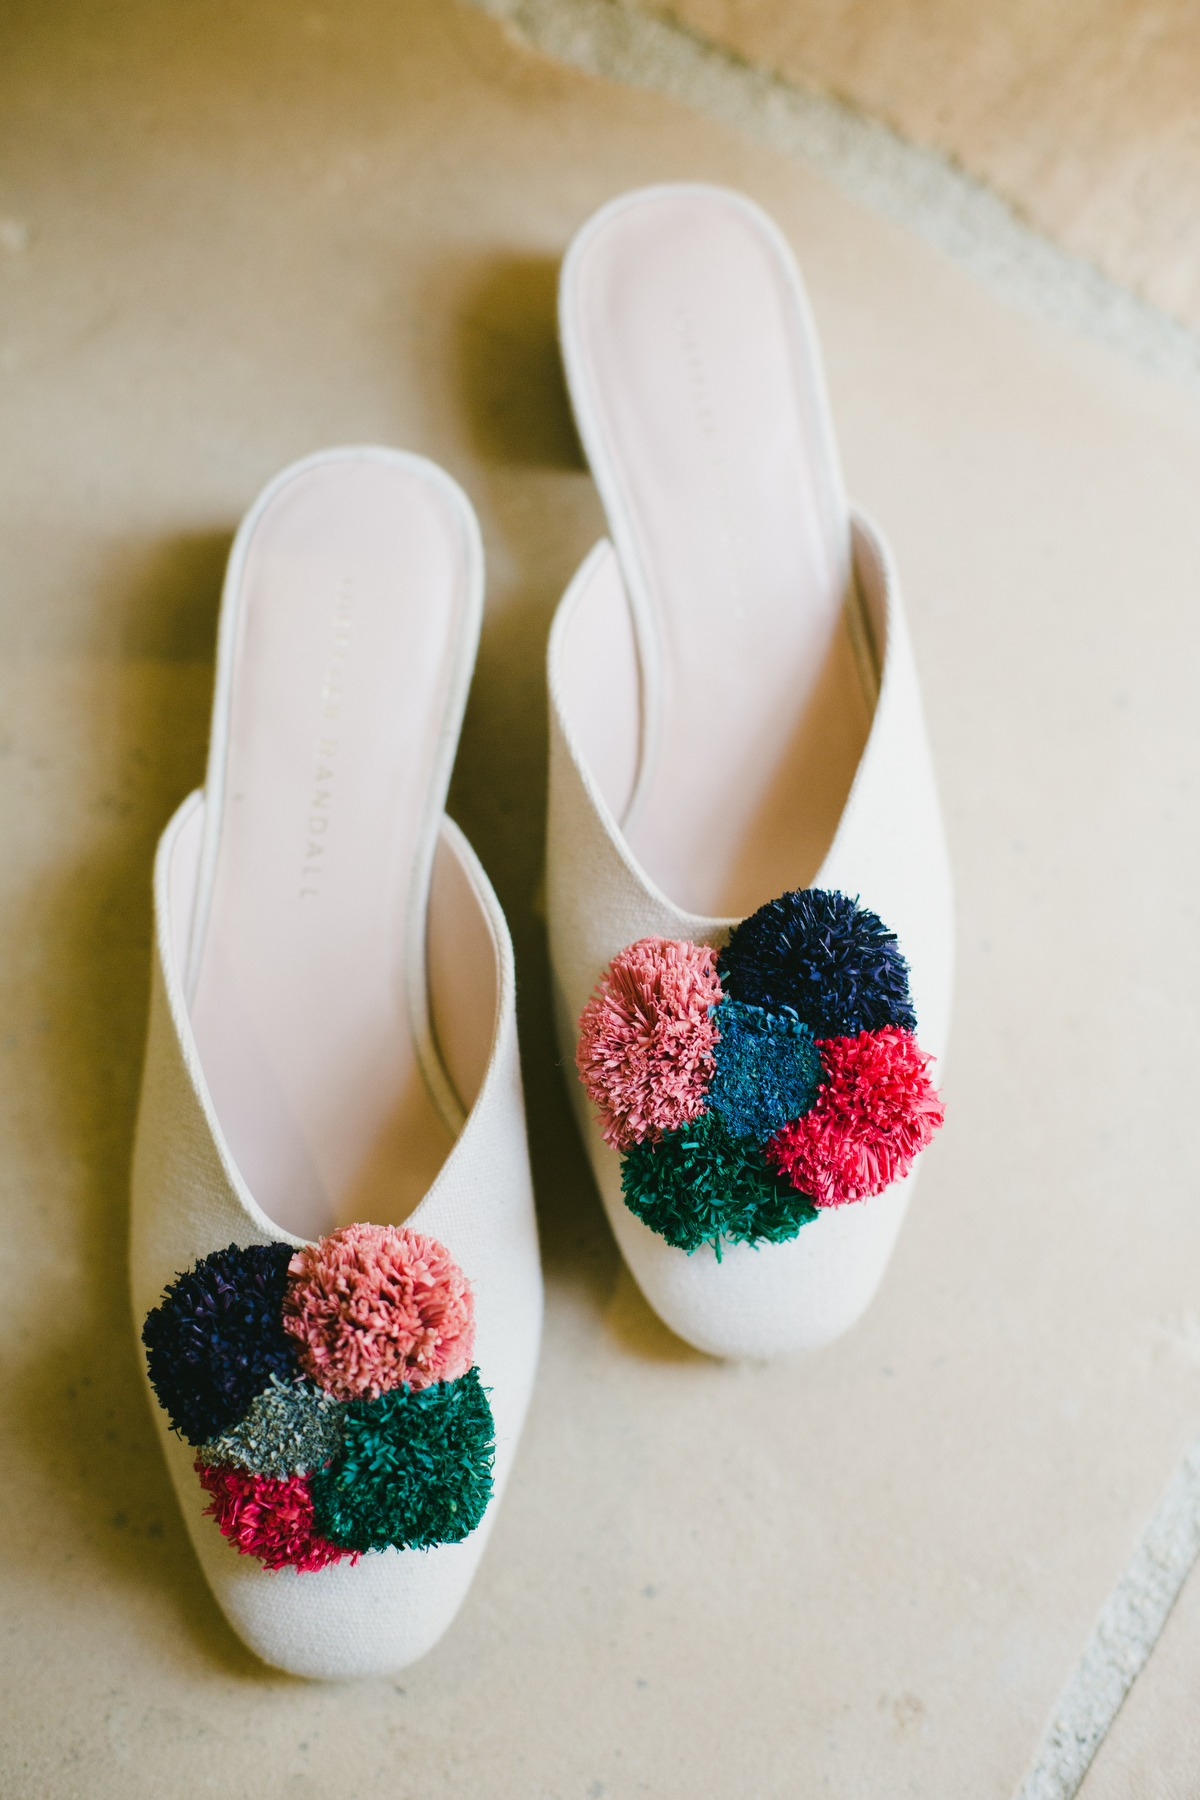 Colorful bridal shoes by Loeffler Randall